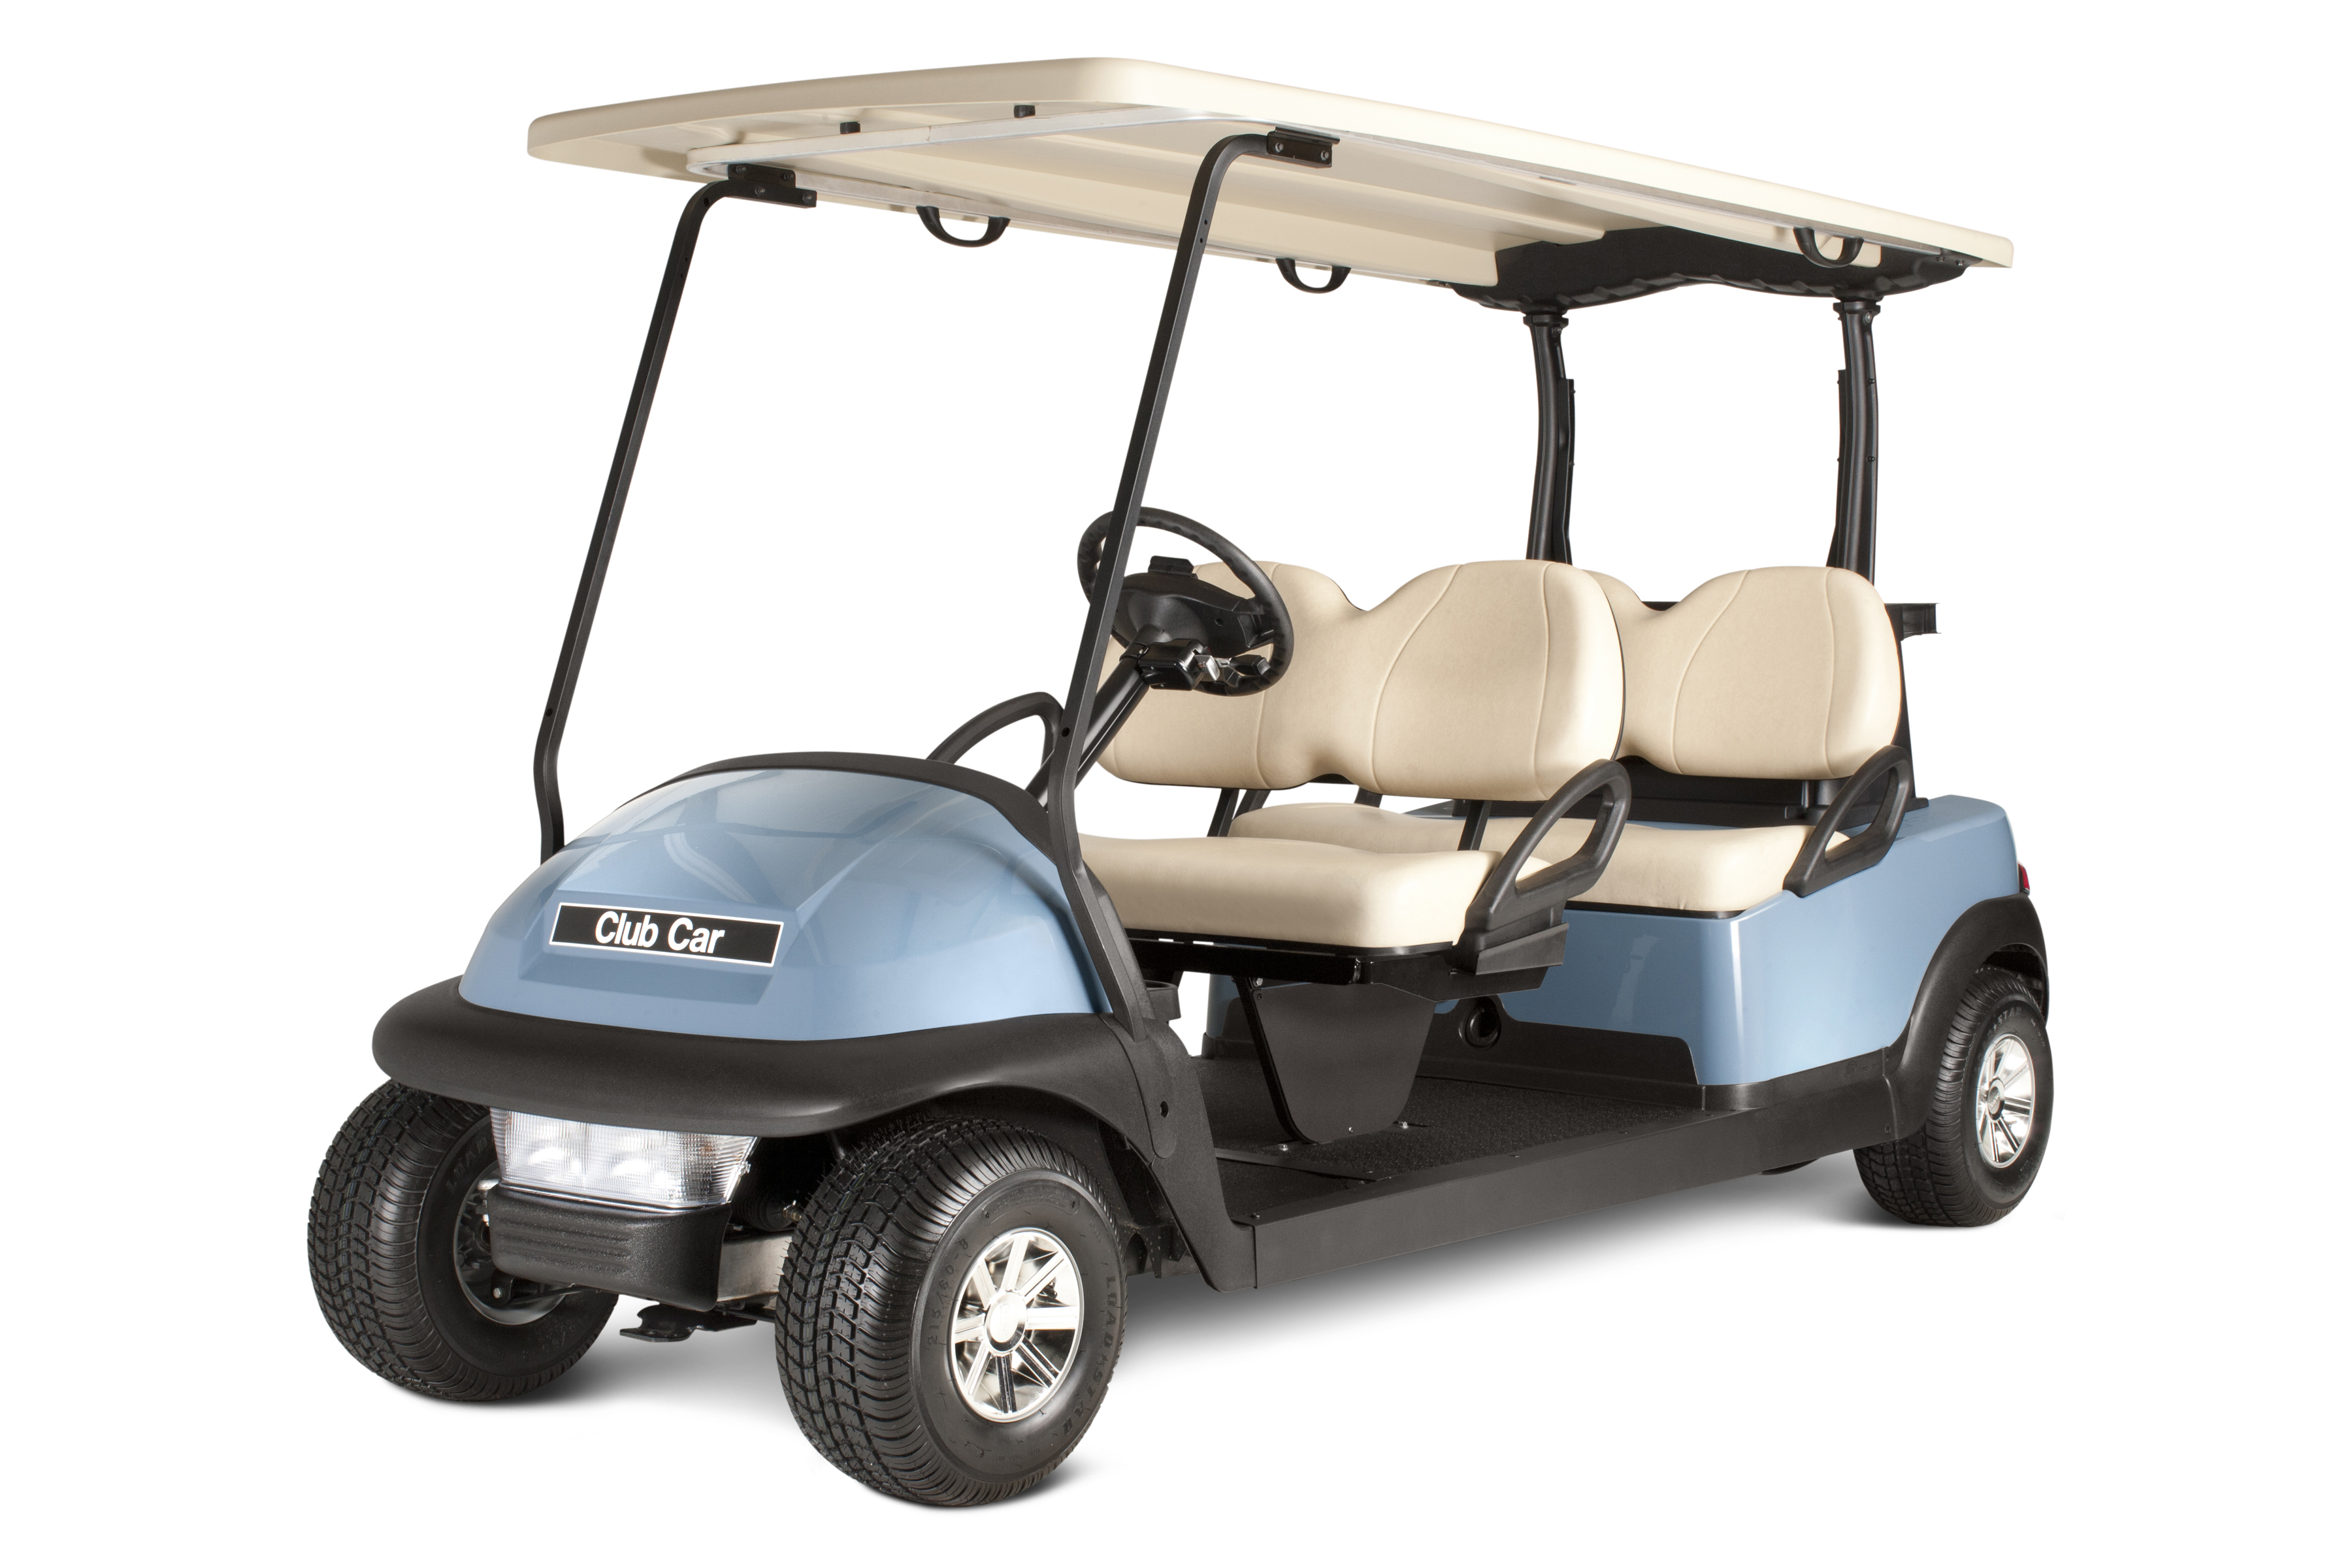 club car introduces new precedent stretch ptv personal transportation vehicle with 19 mph. Black Bedroom Furniture Sets. Home Design Ideas